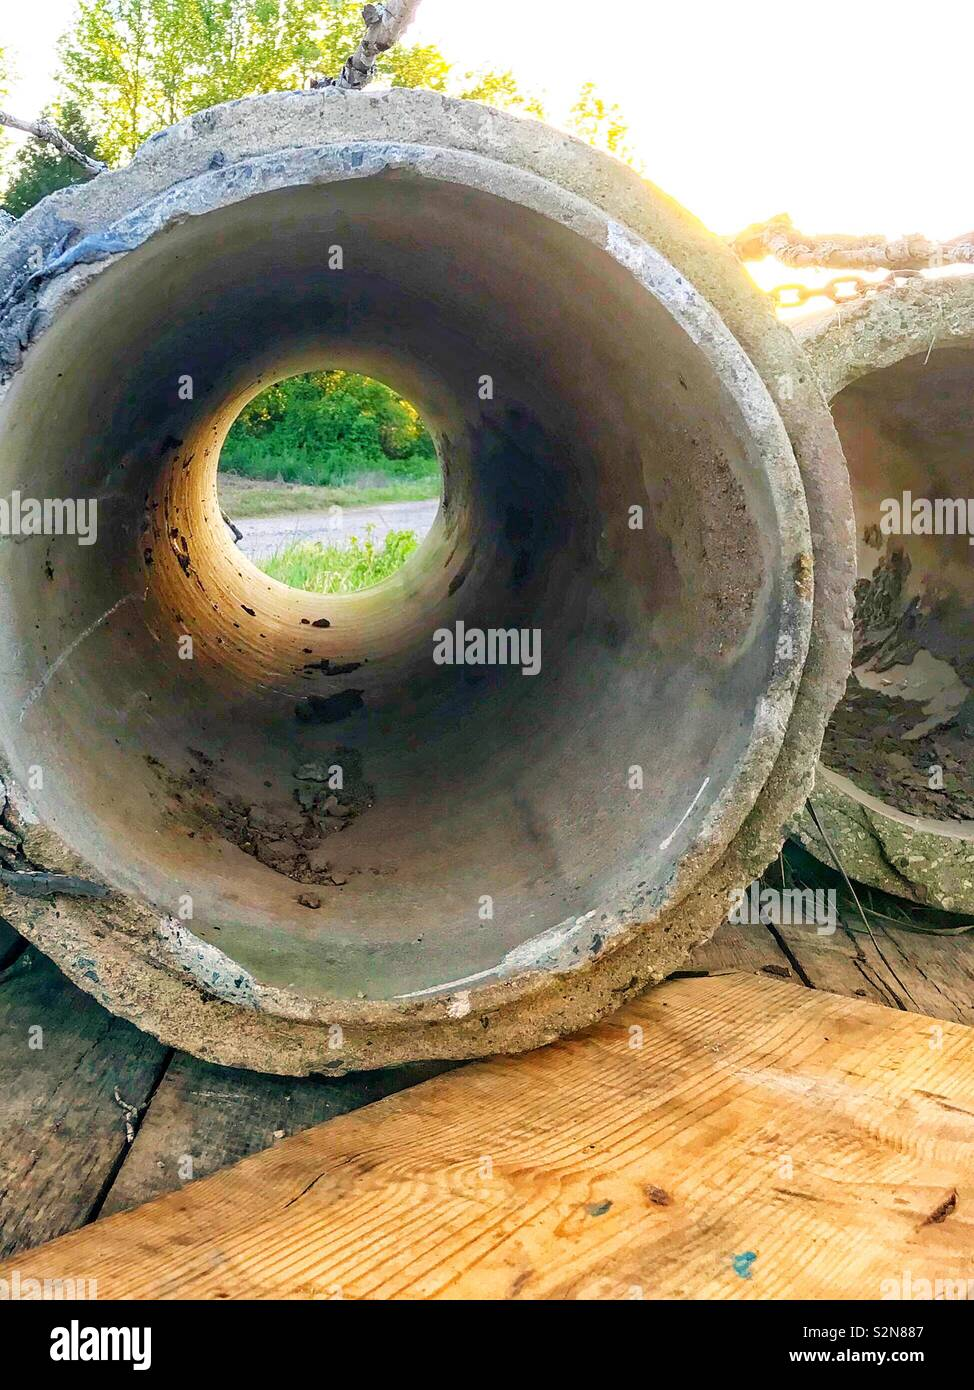 Concrete Pipe Stock Photos & Concrete Pipe Stock Images - Alamy